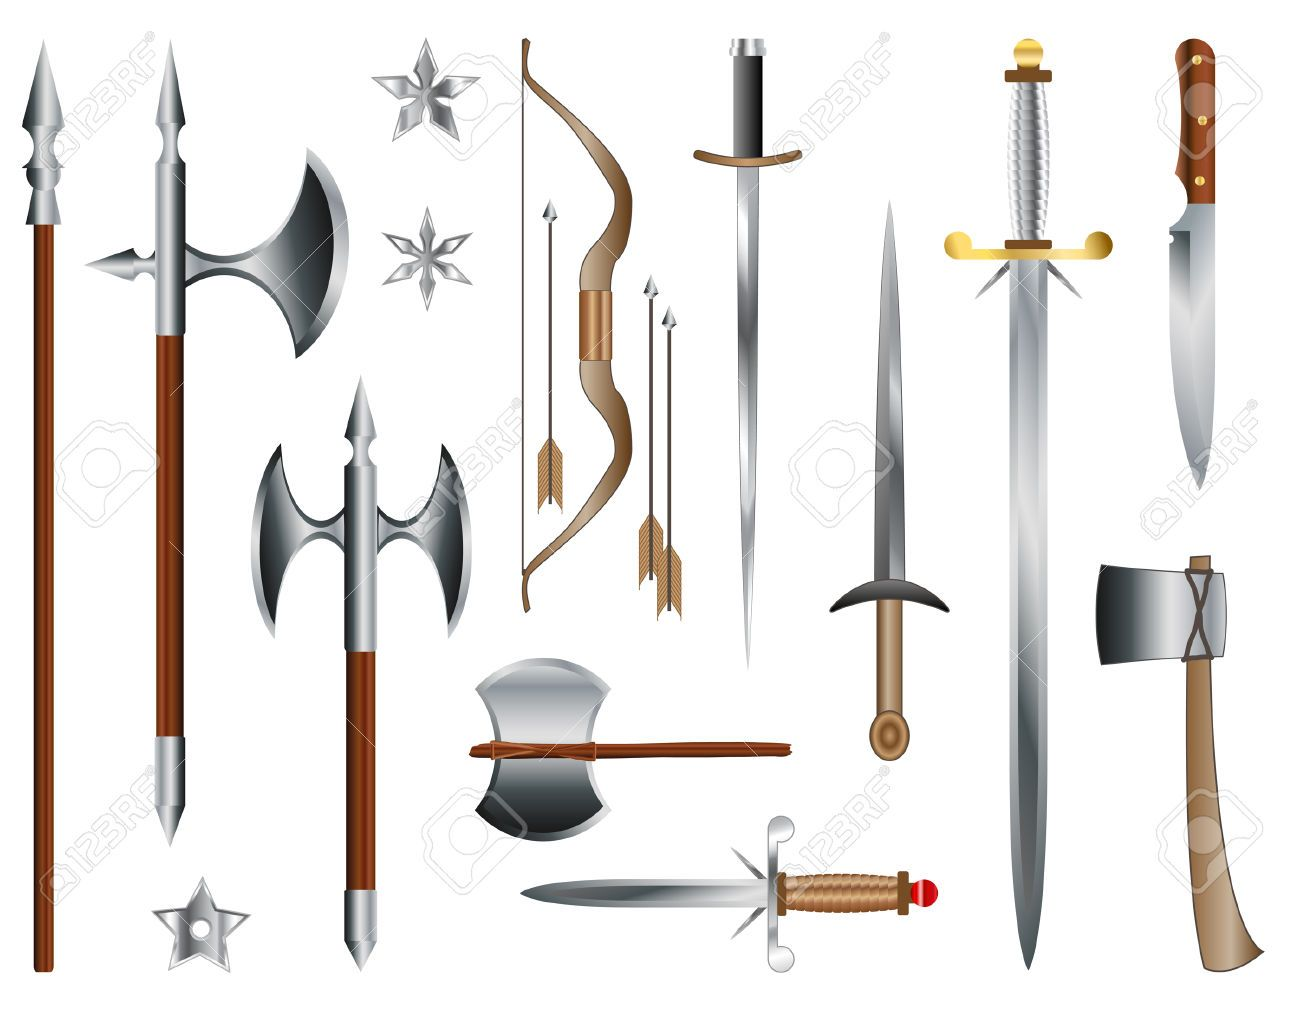 Essay on medieval weapons